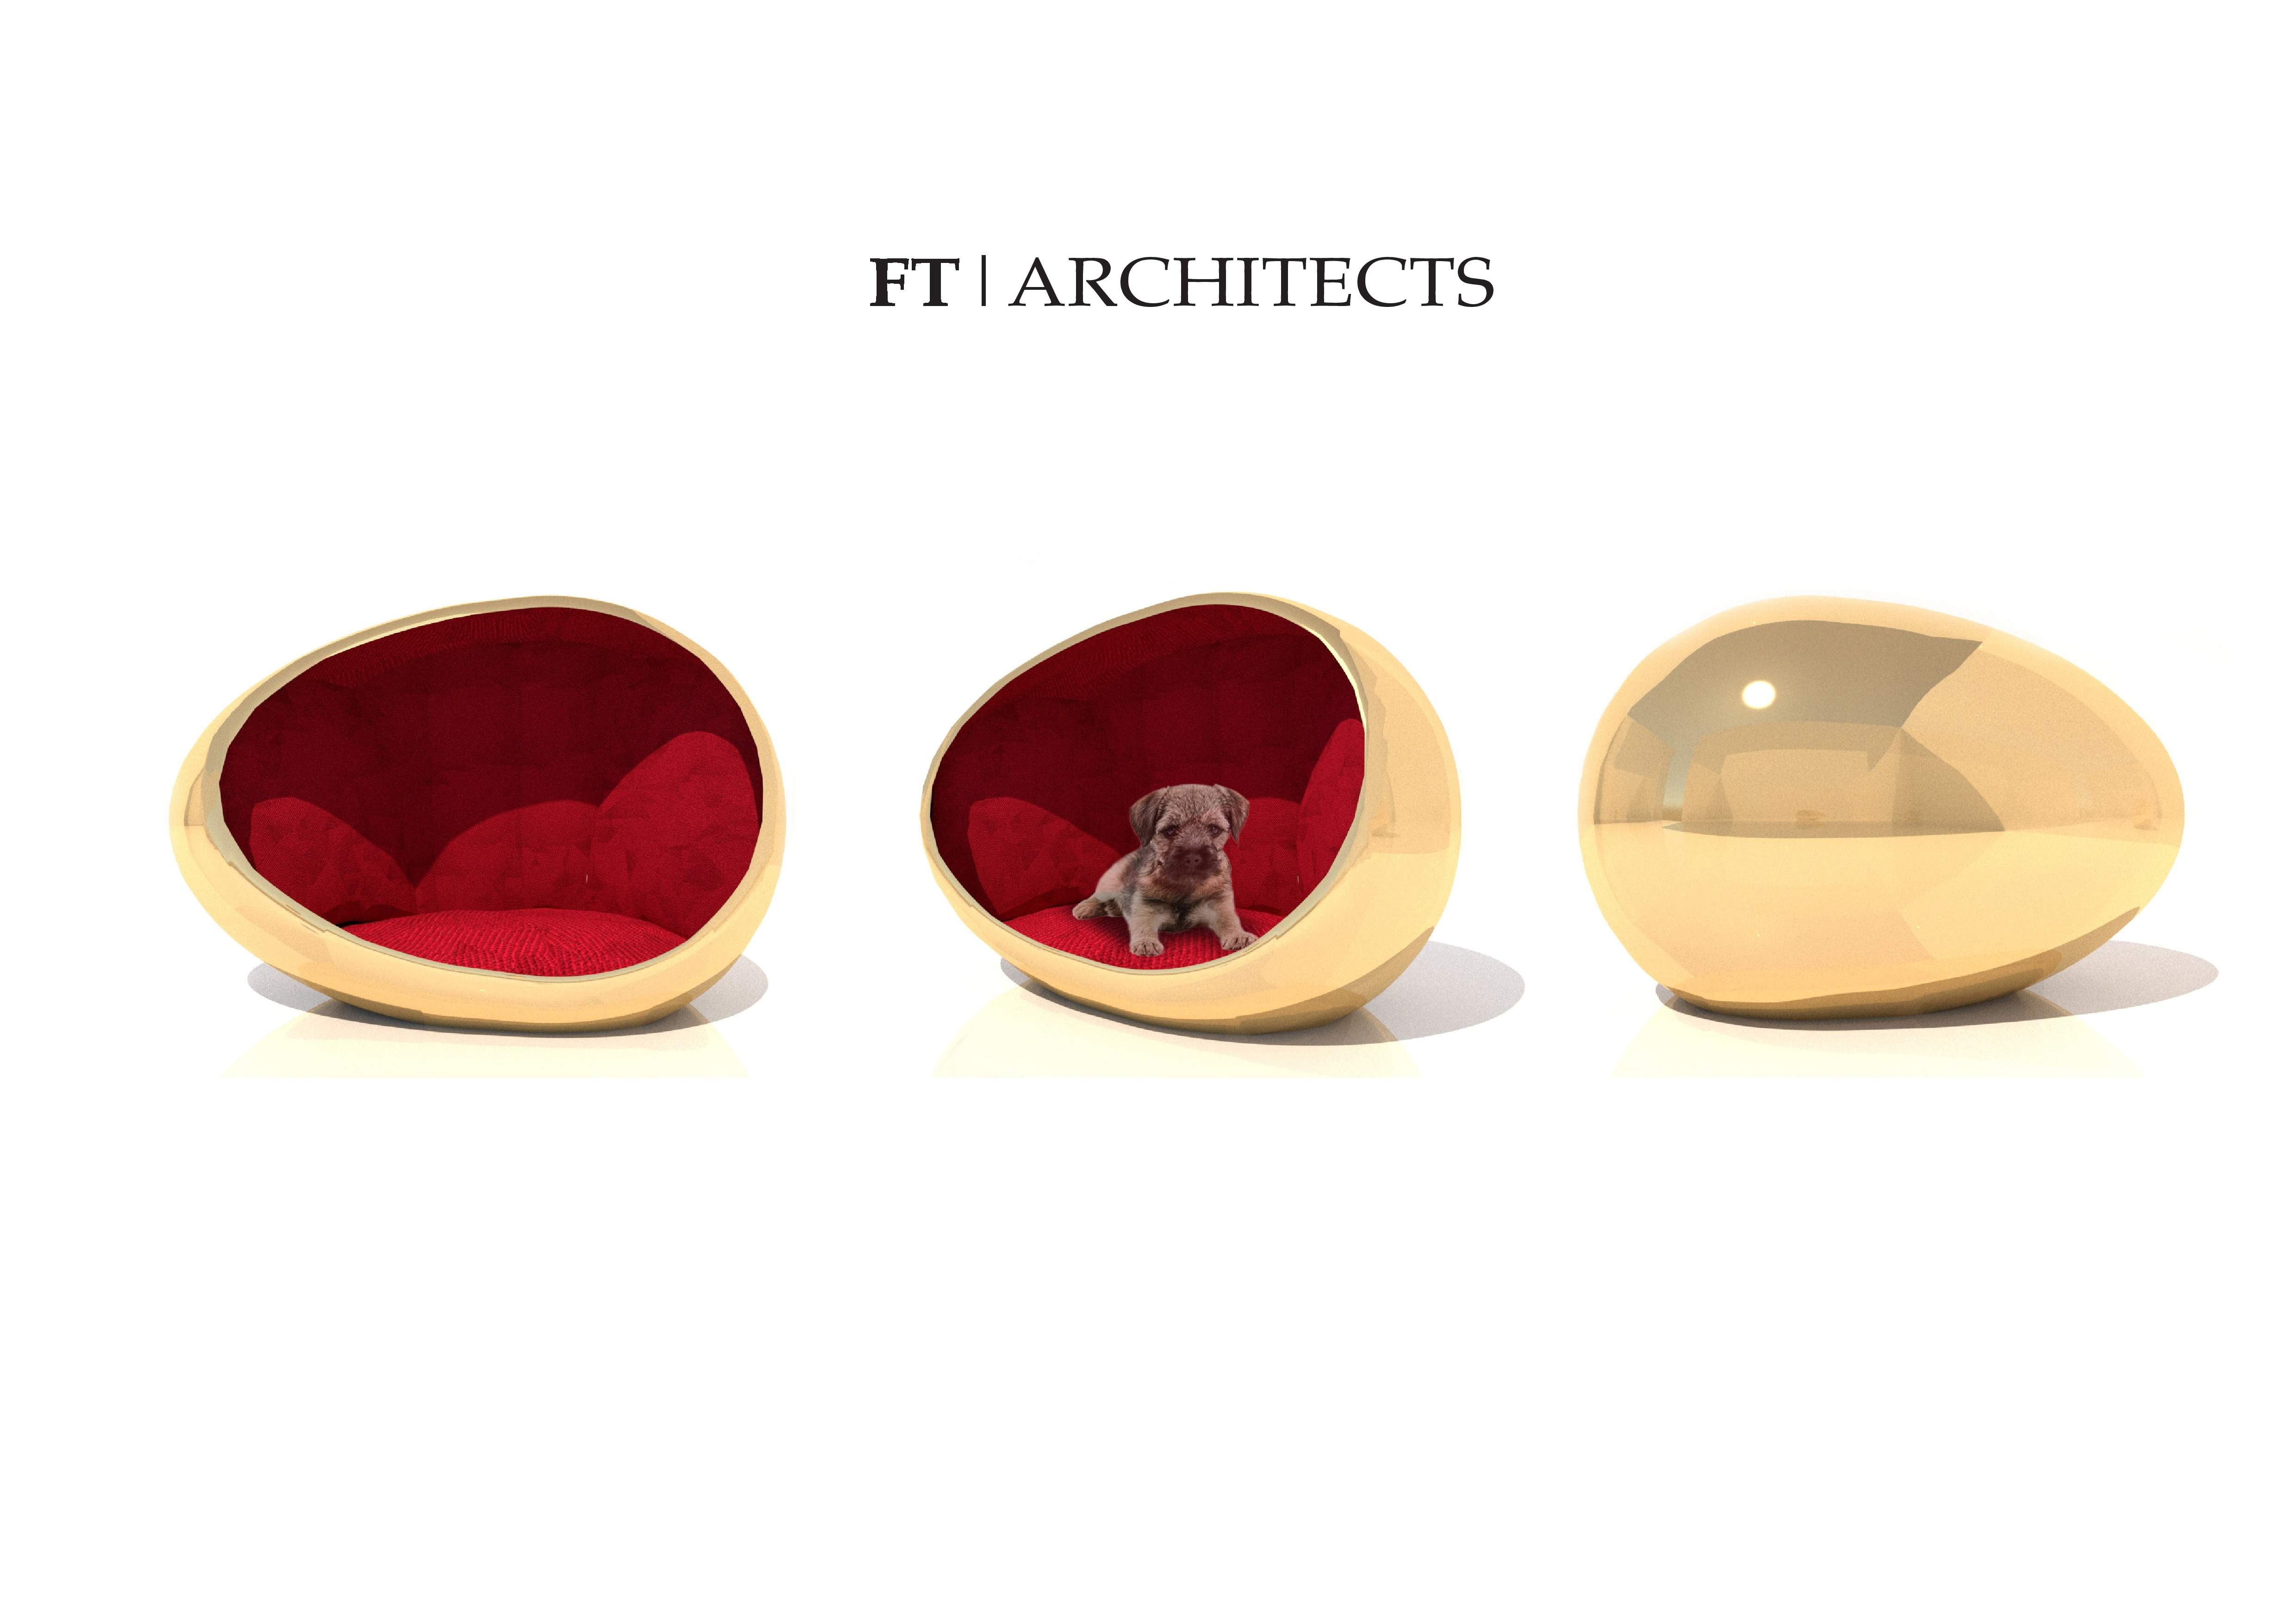 FT Architects with Bruce Oldfield OBE - The Egg - Image 2 of 2